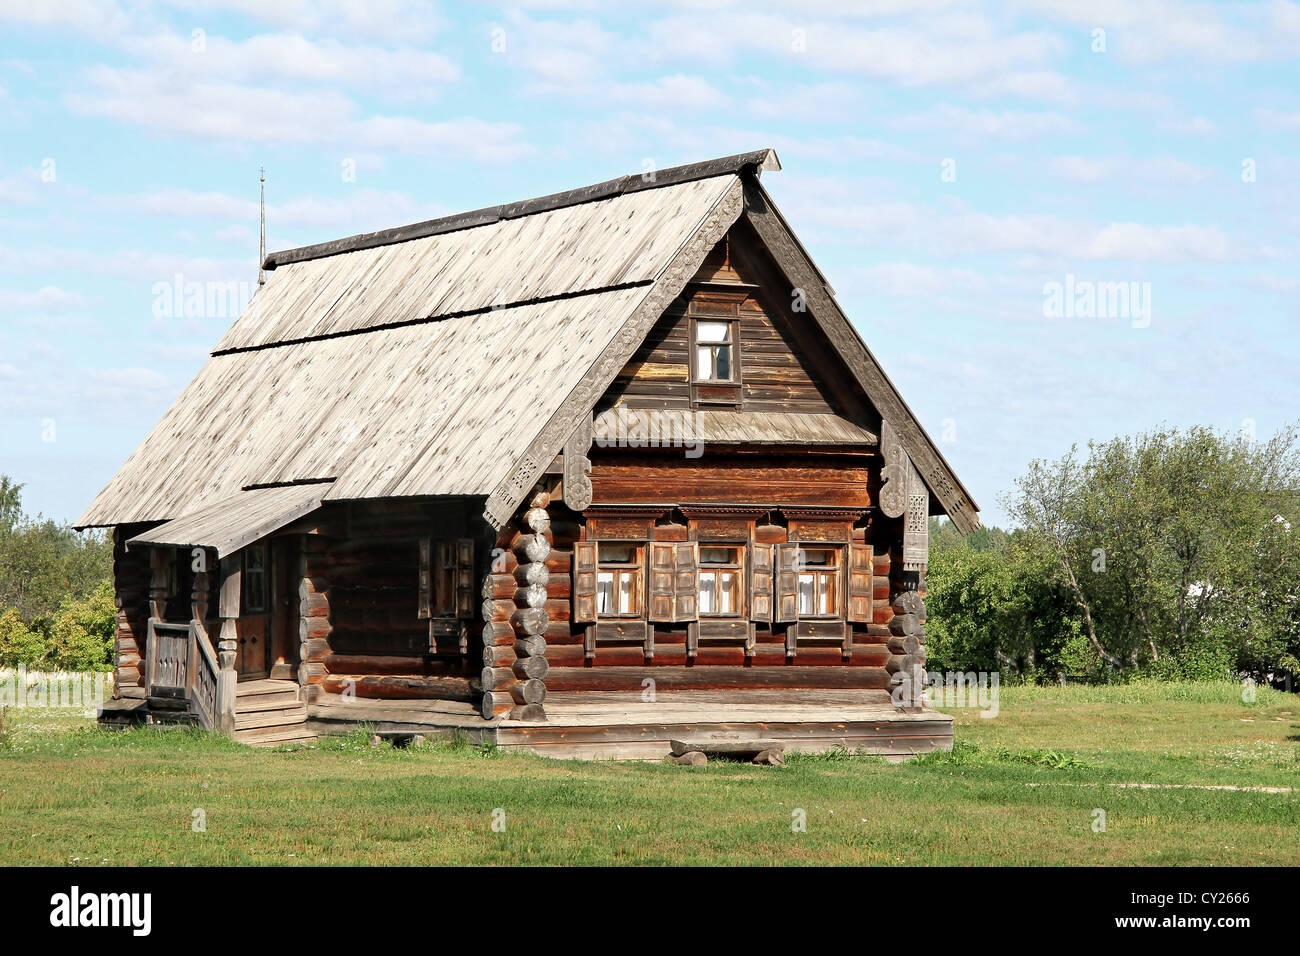 Old wooden house - Stock Image